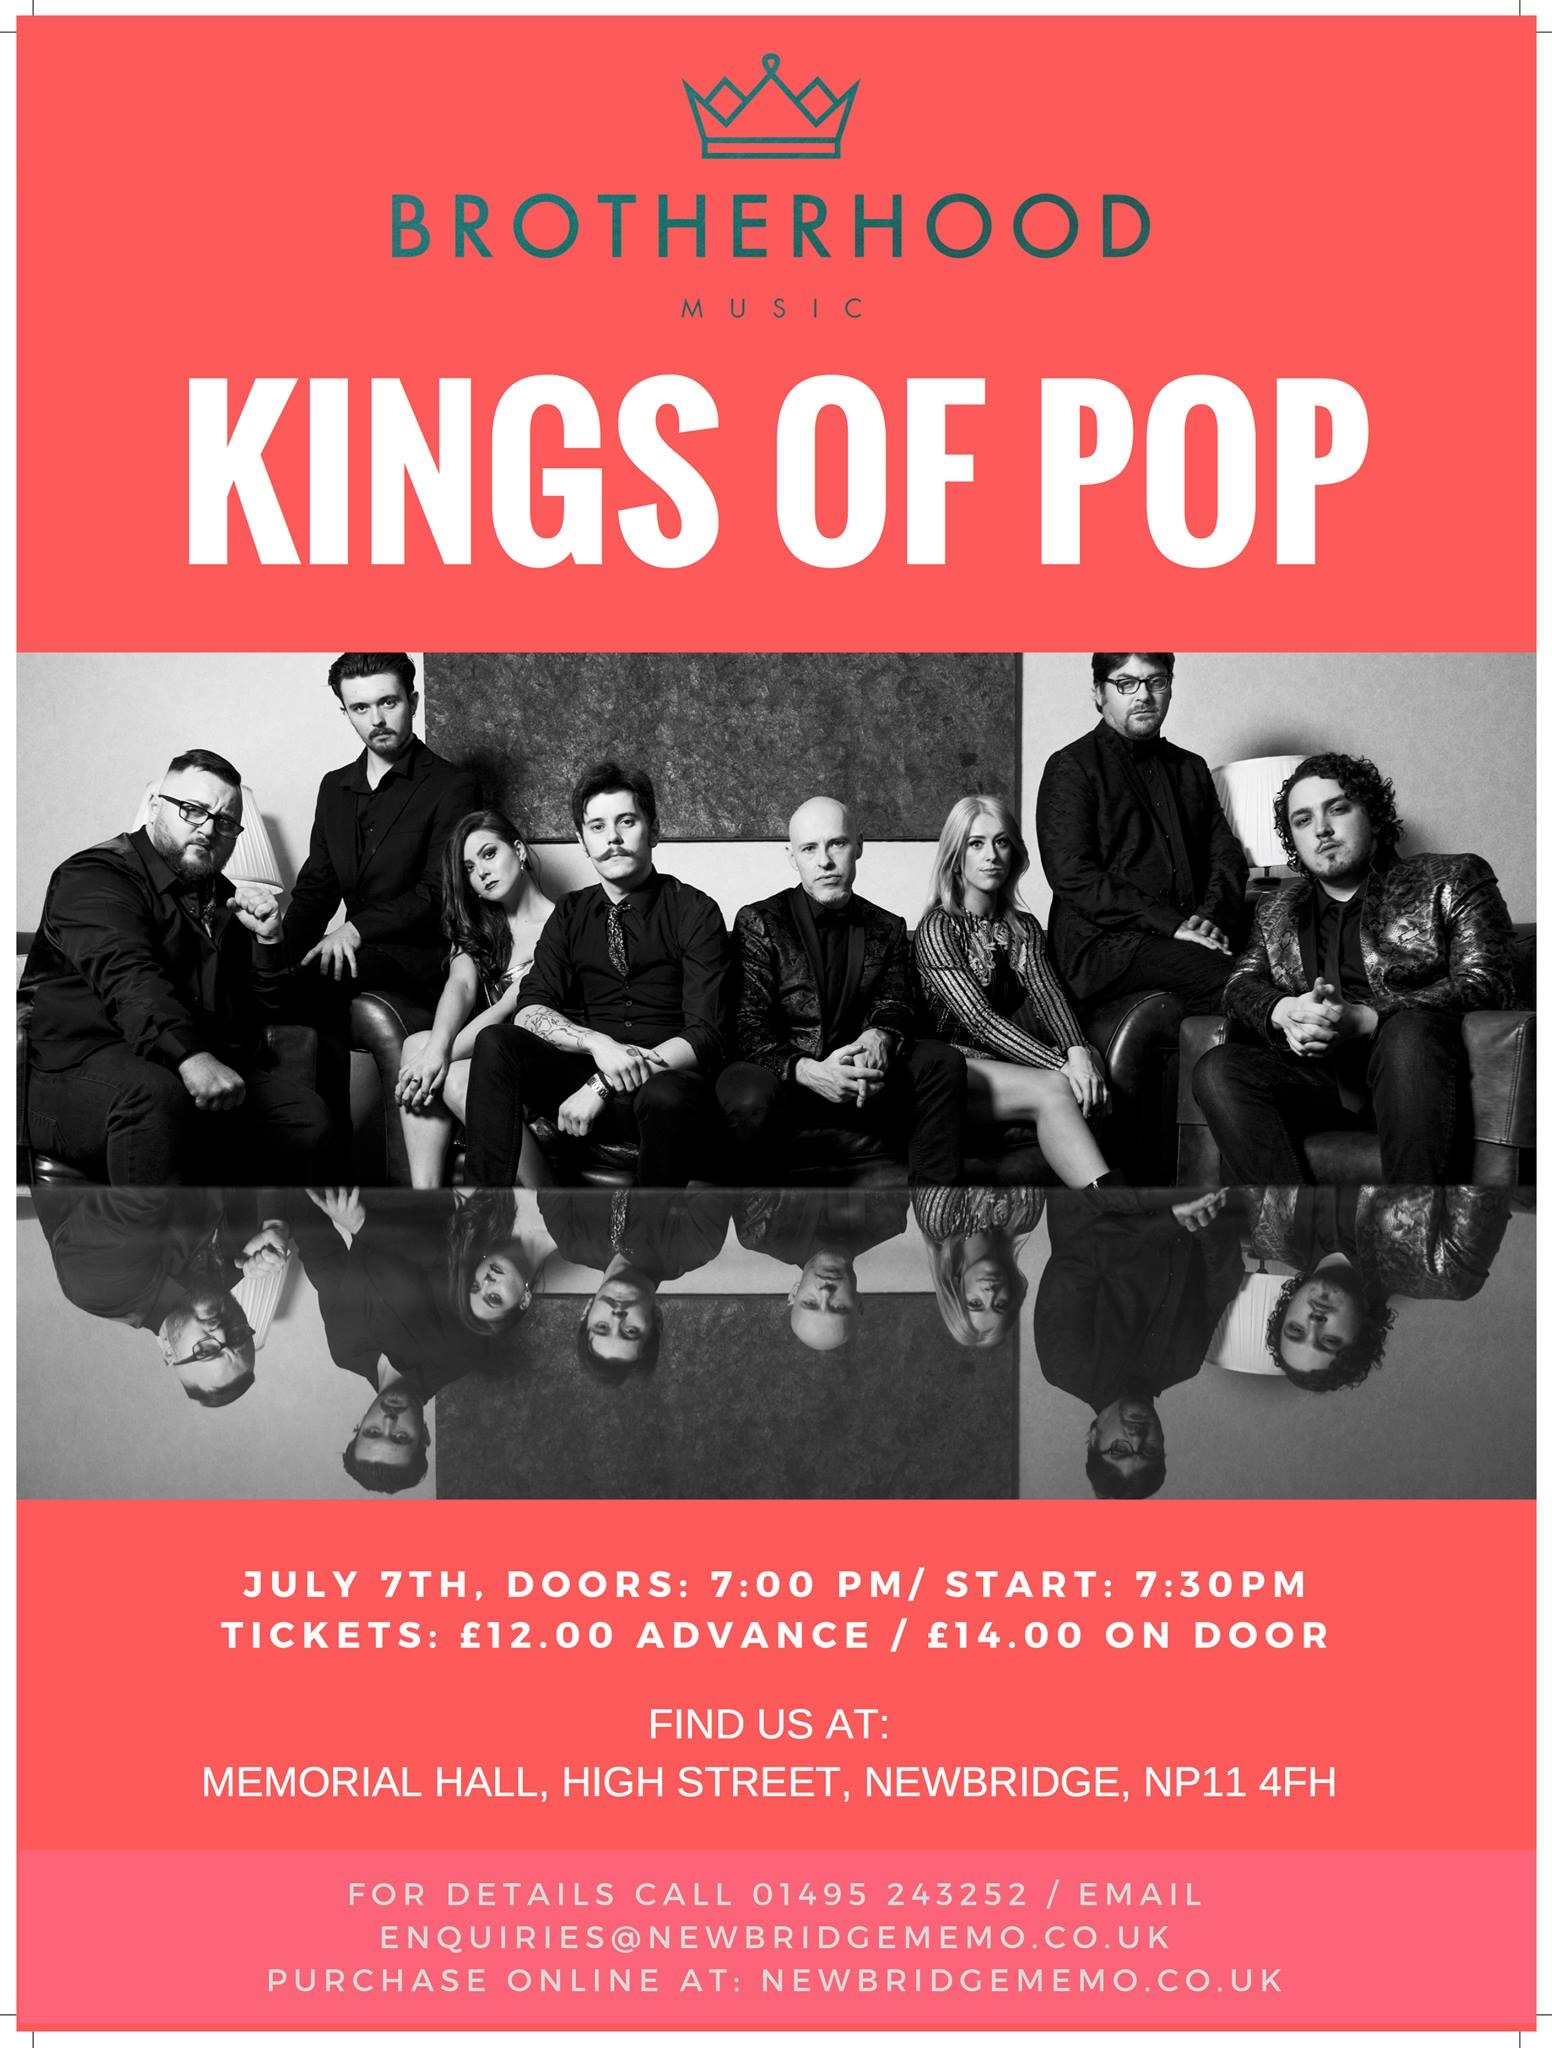 KINGS OF POP - An evening with The Brotherhood